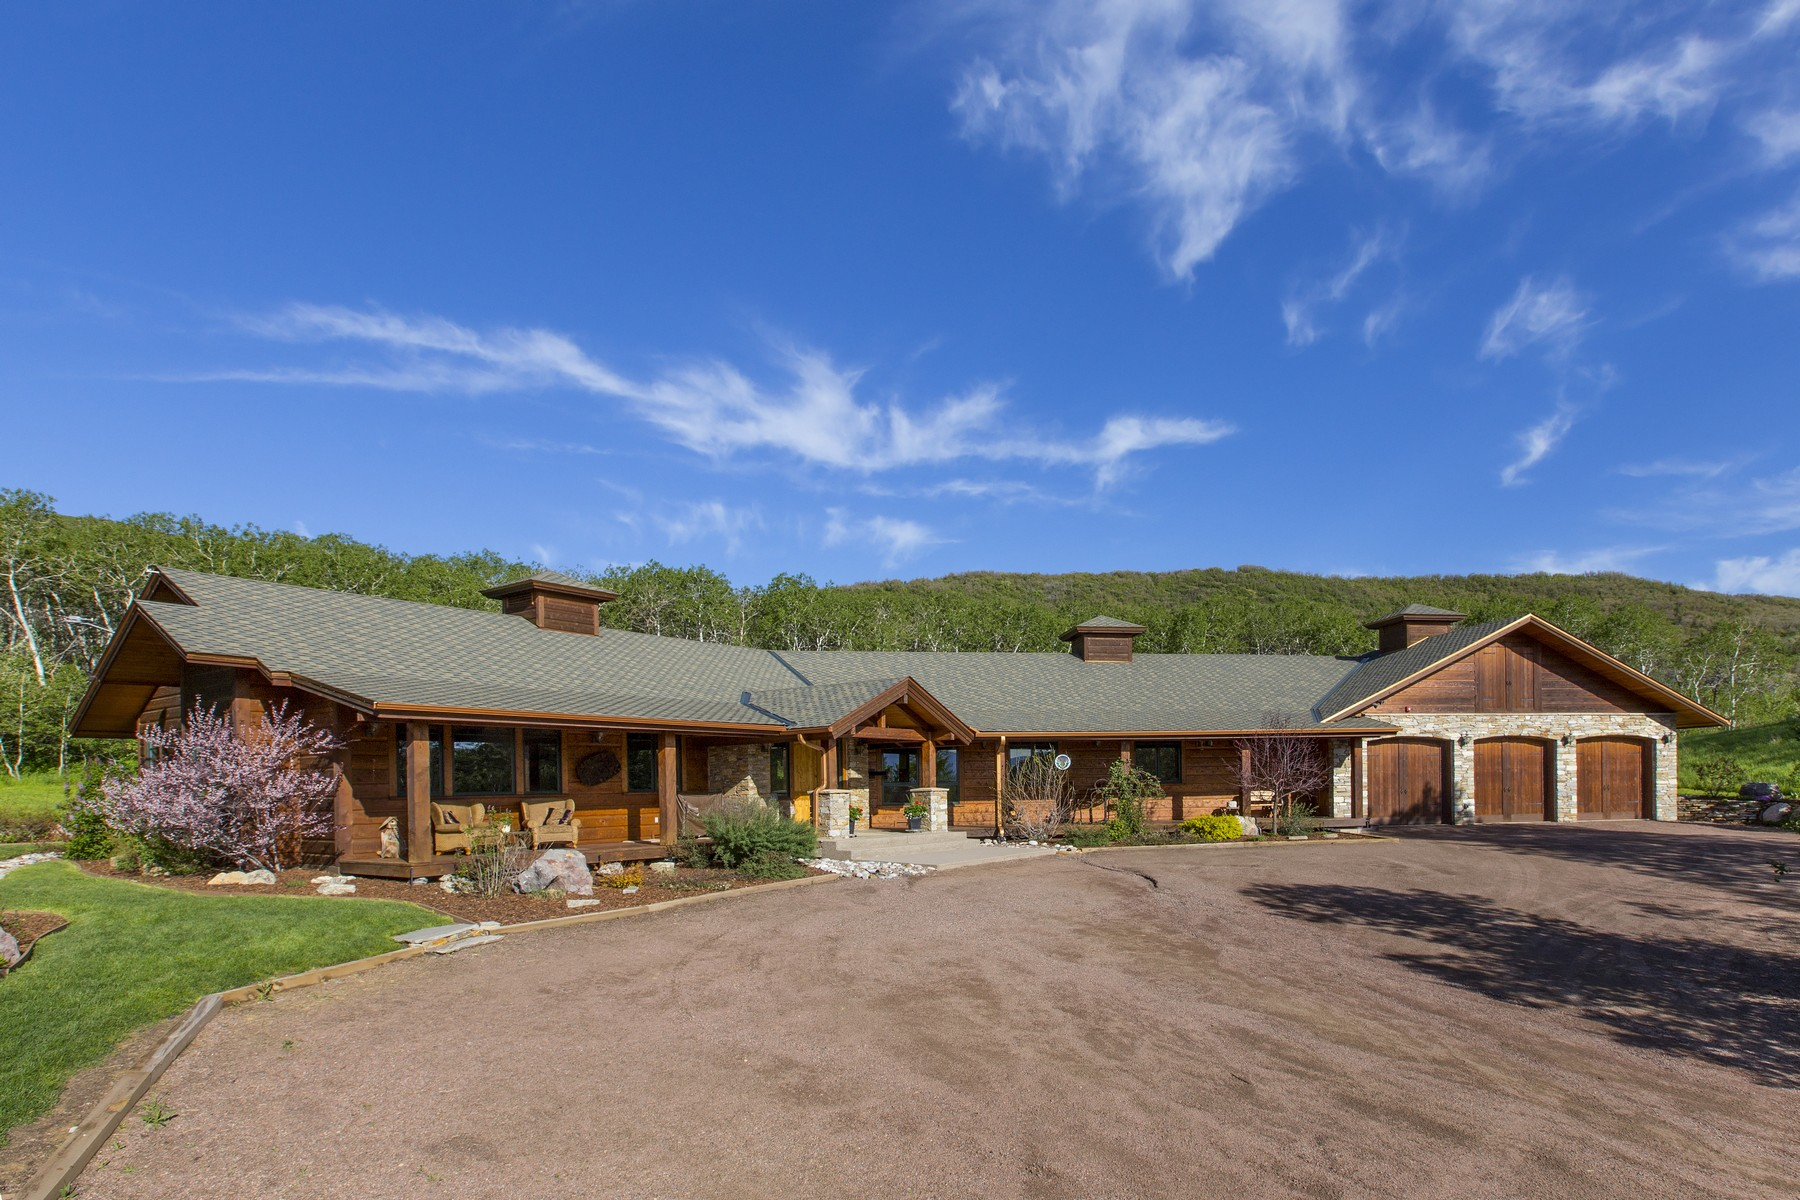 Single Family Home for Sale at Impeccable Gentleman's Ranch 26000 Deerwood Lane Oak Creek, Colorado 80467 United States